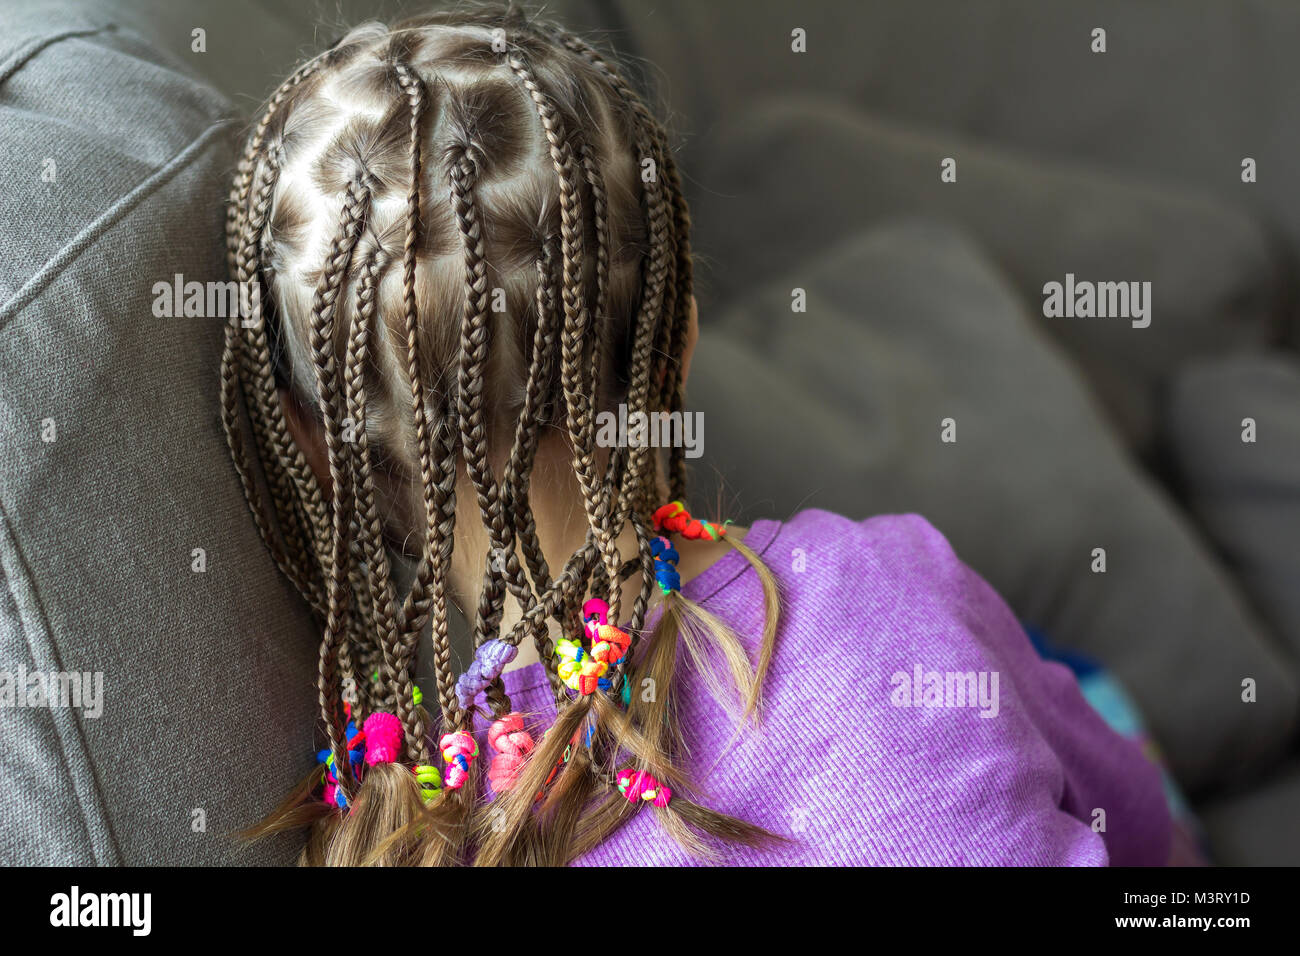 Close Up Of Braid Hair Of Little Girl With Colorful Rubber Bands